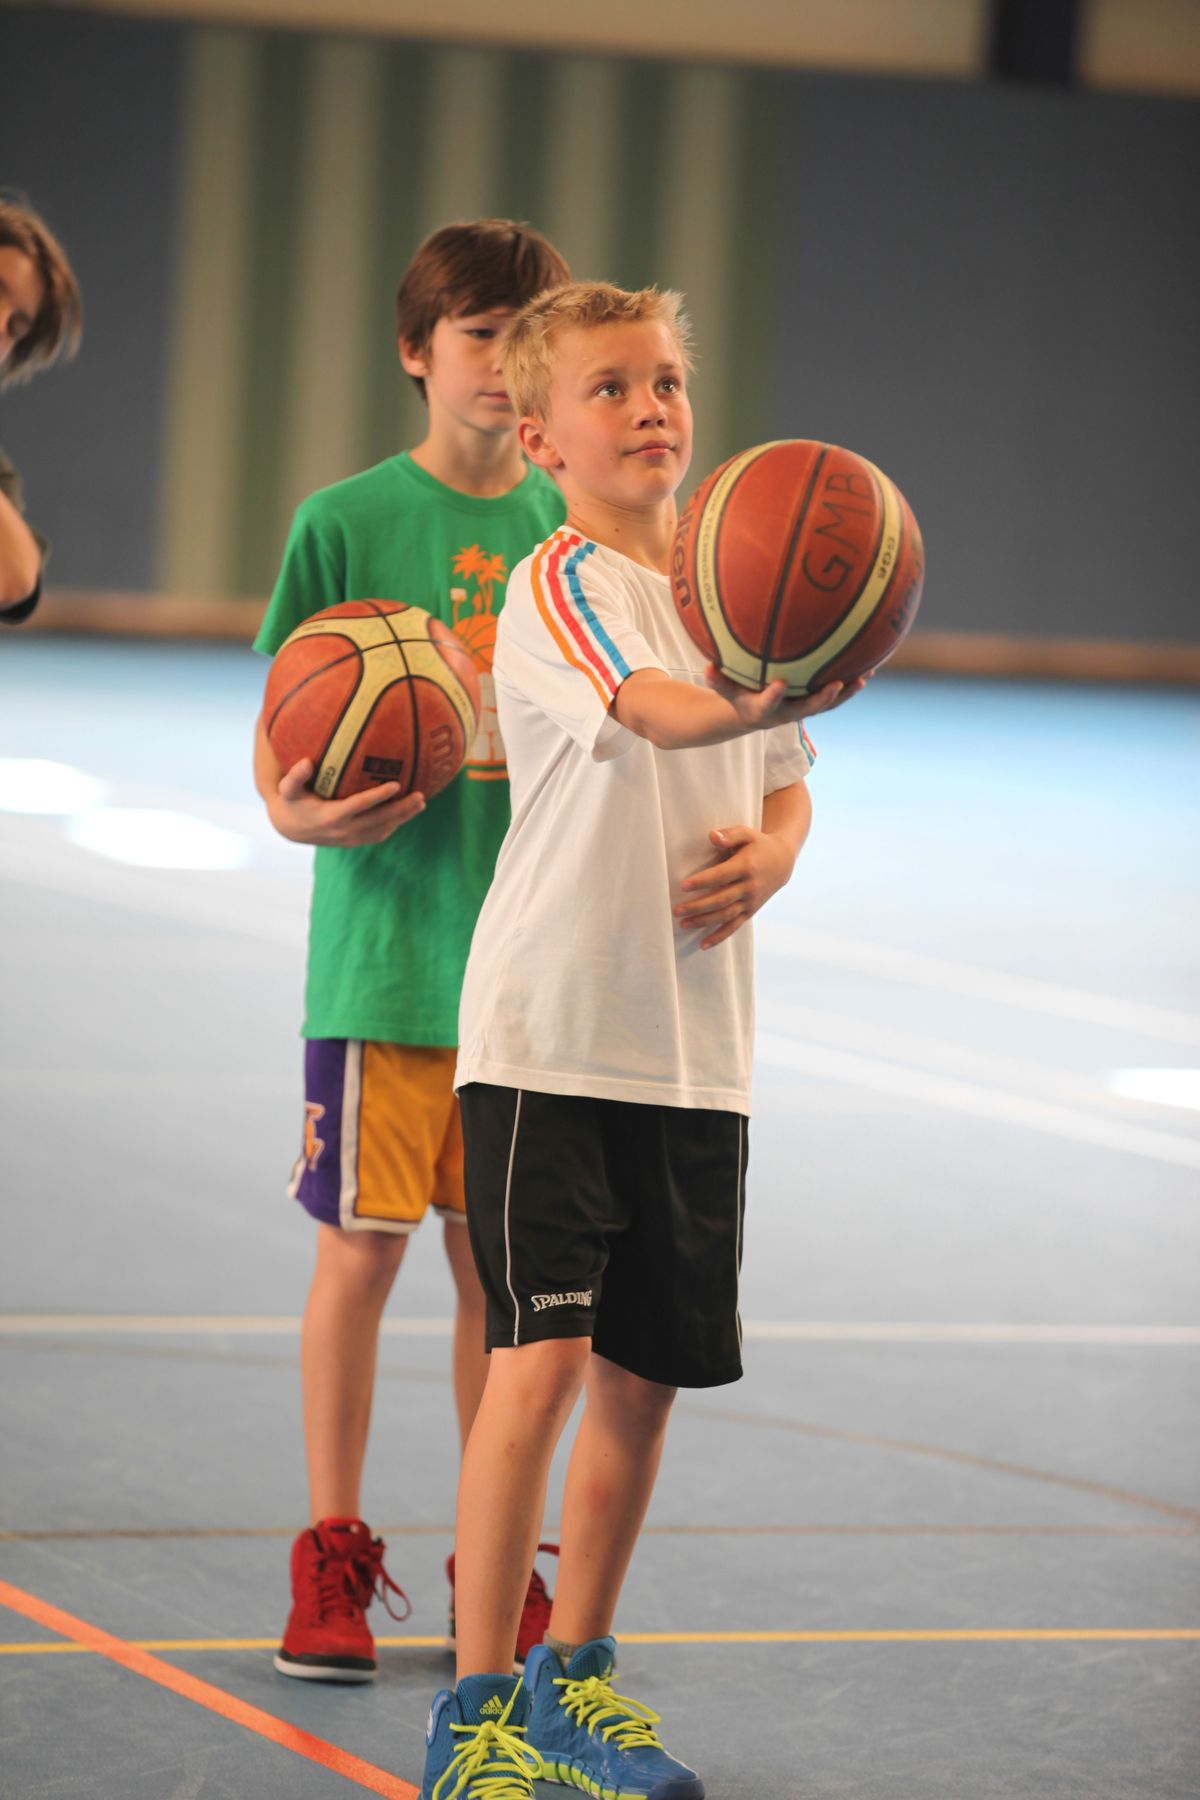 Sommer_BBall-Camp_2014_Tag 3 (2)